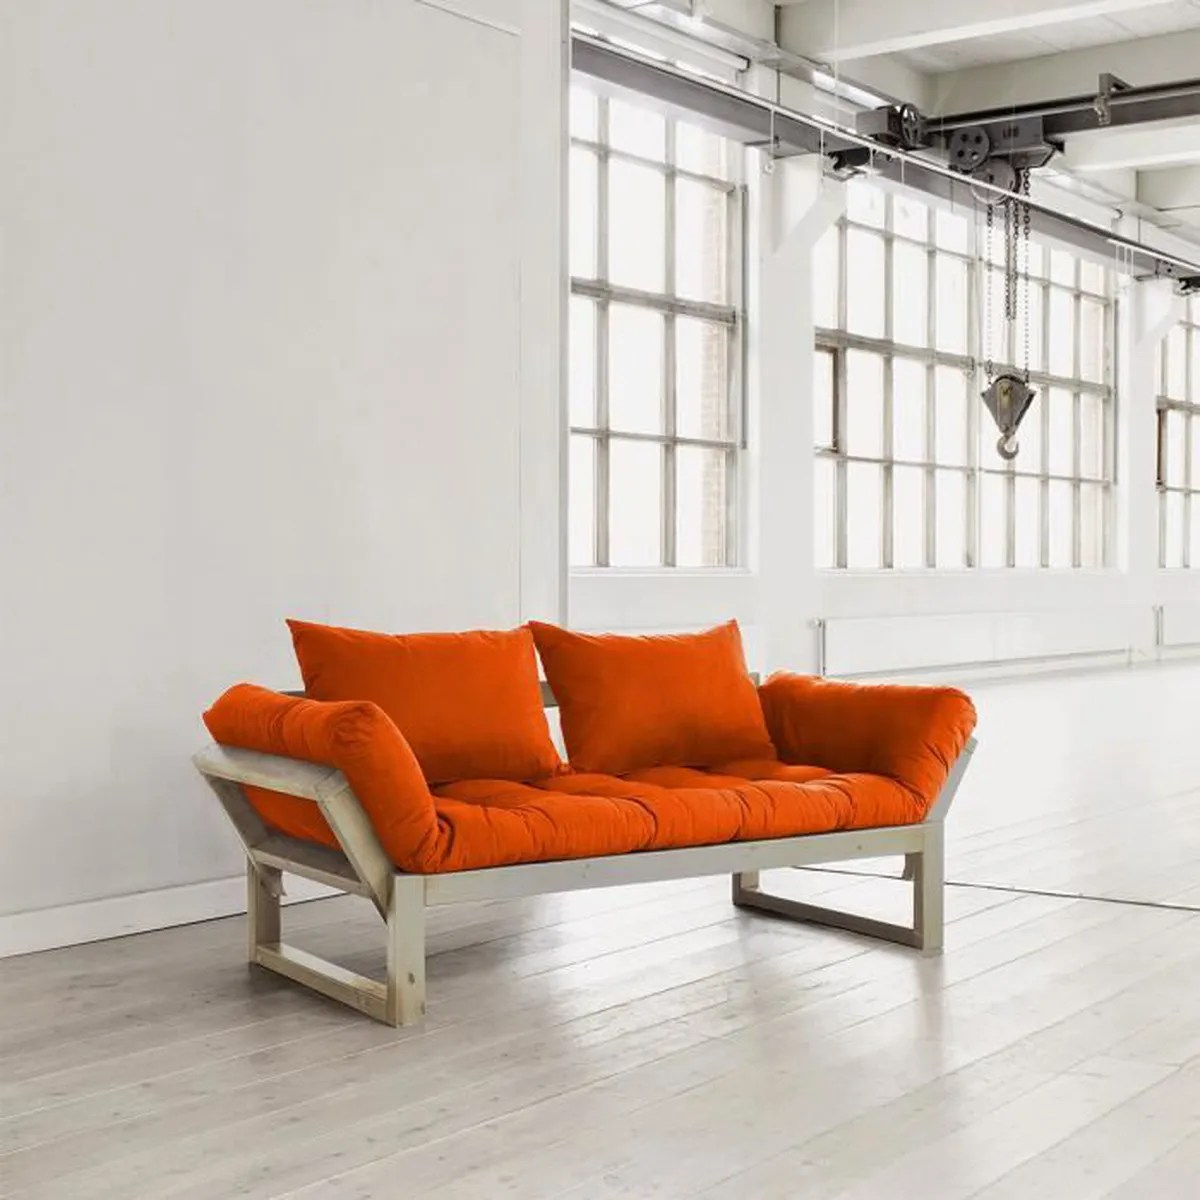 Canapé Convertible 180 Cm Canapé Convertible Edge 180 Cm Bois Naturel Futon Orange Naturel